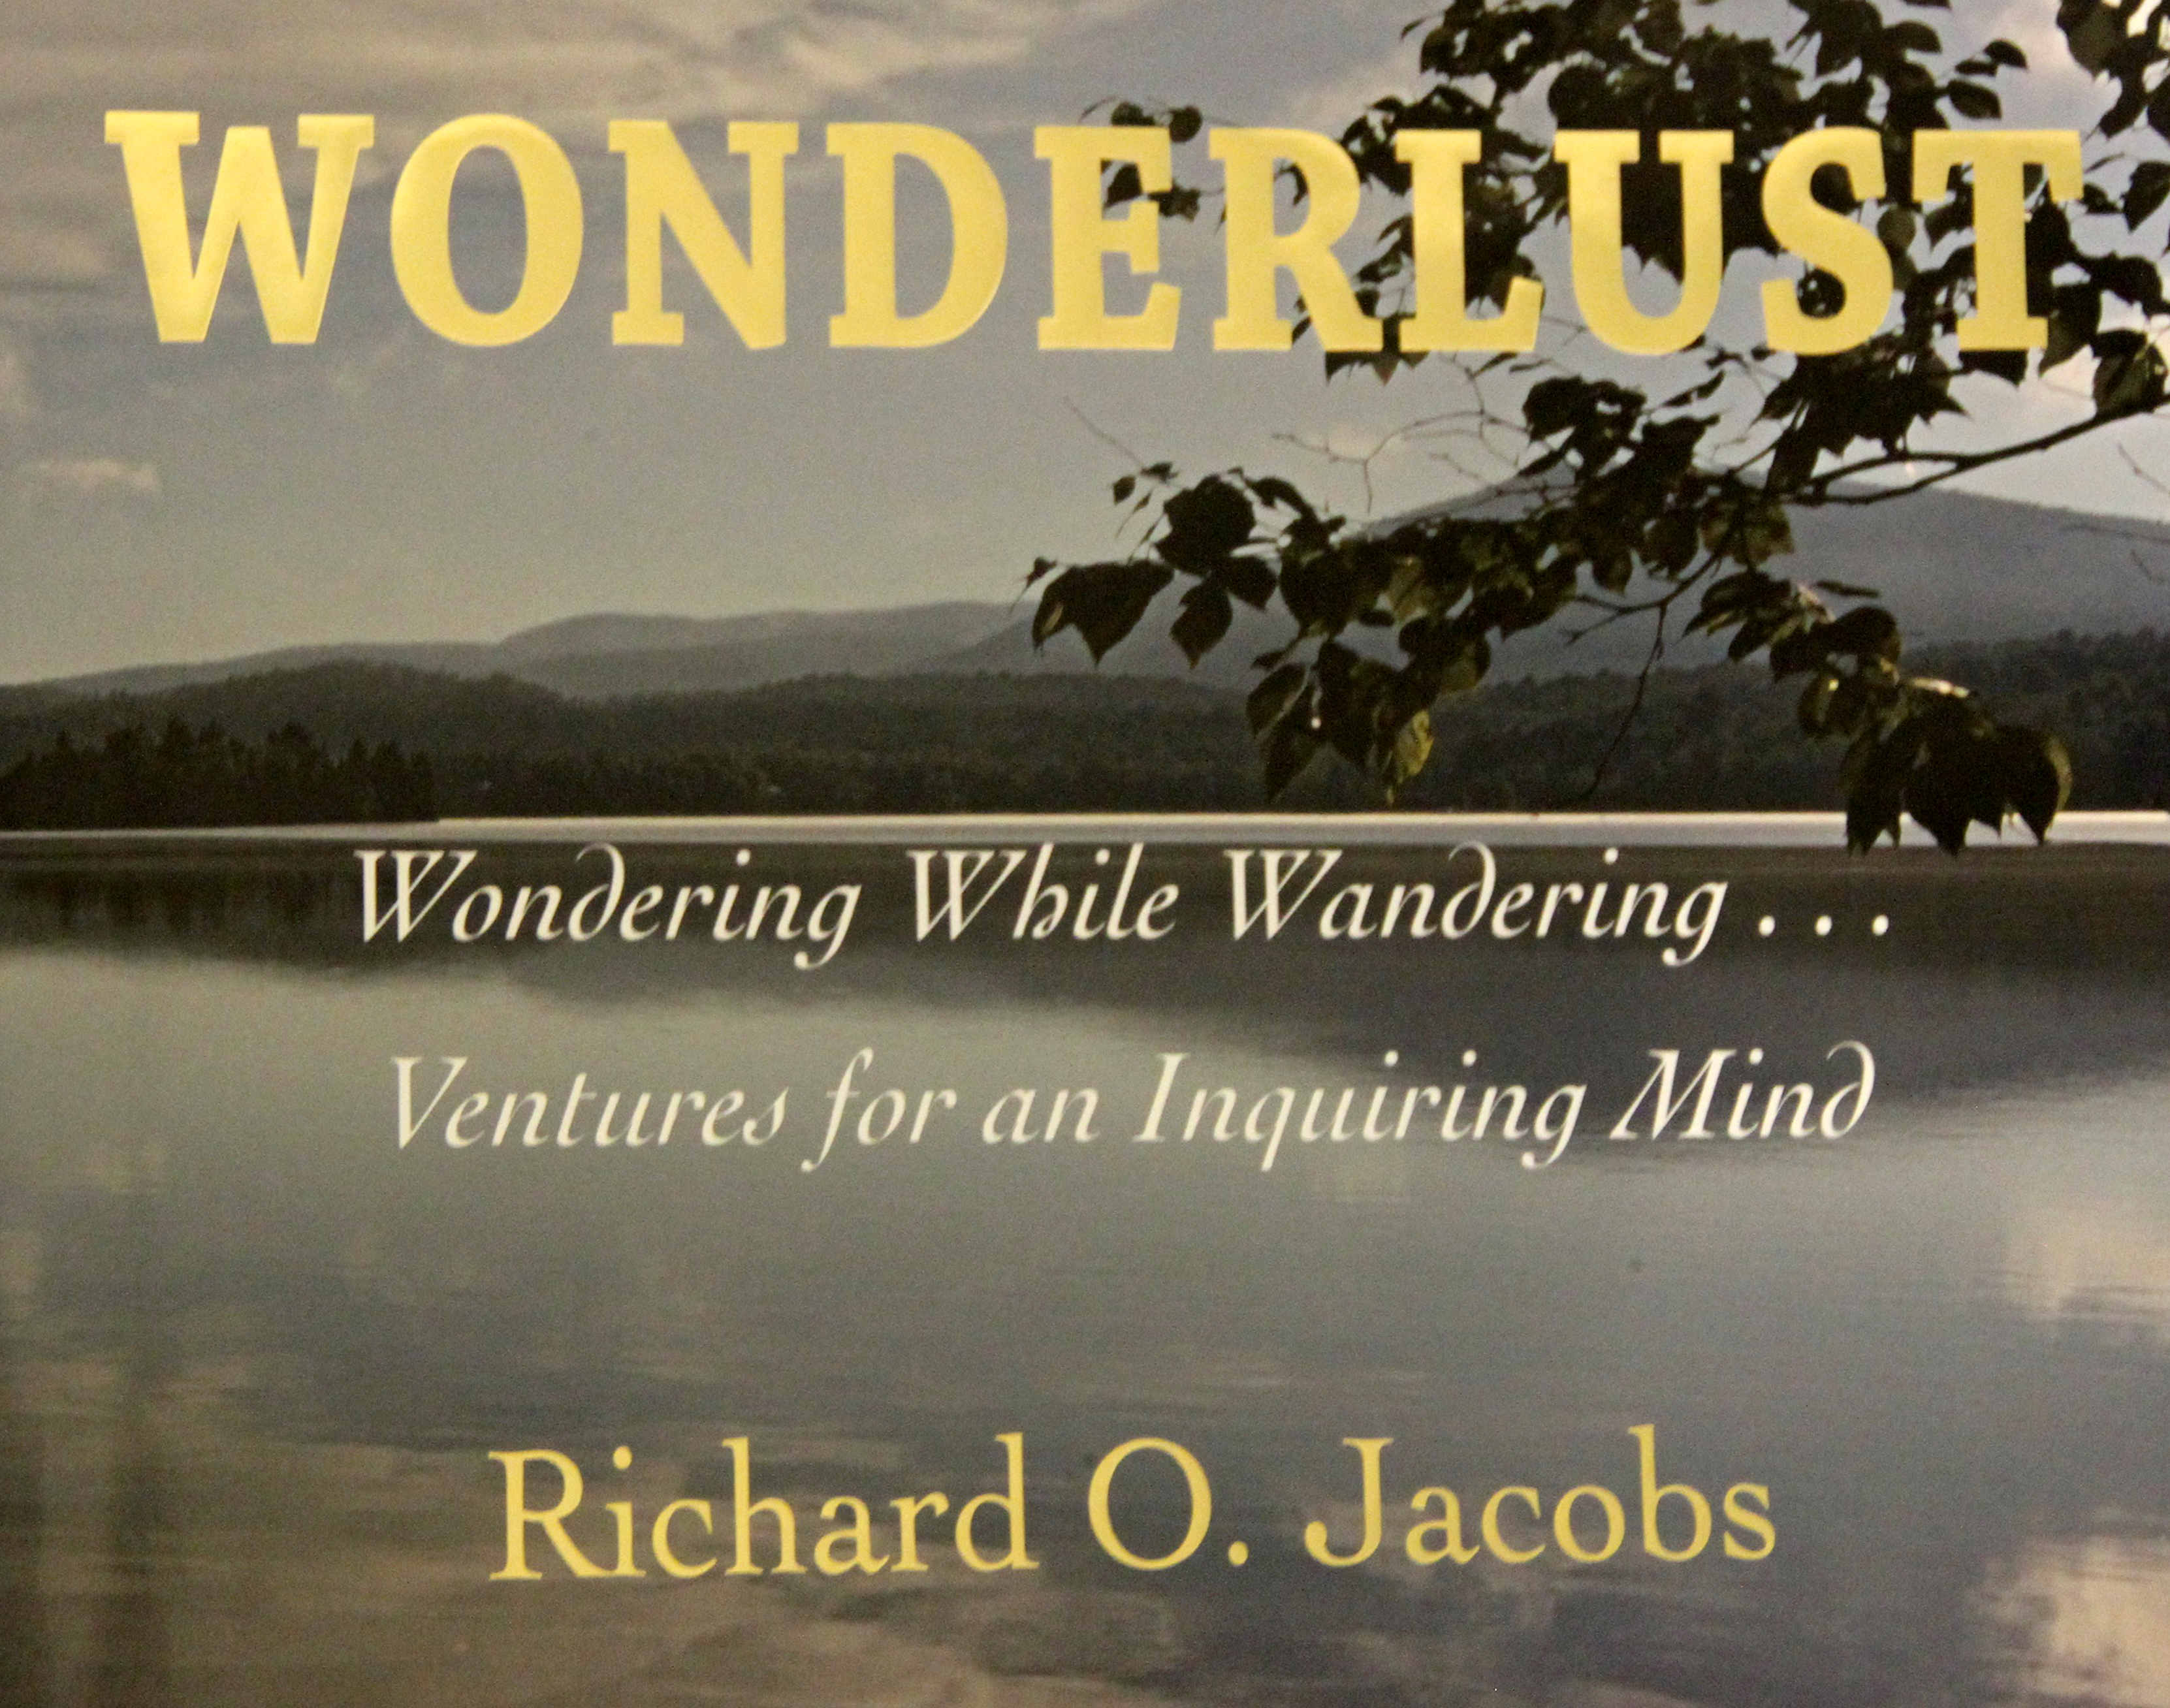 Cover of Dick Jacobs' book Wonderlust